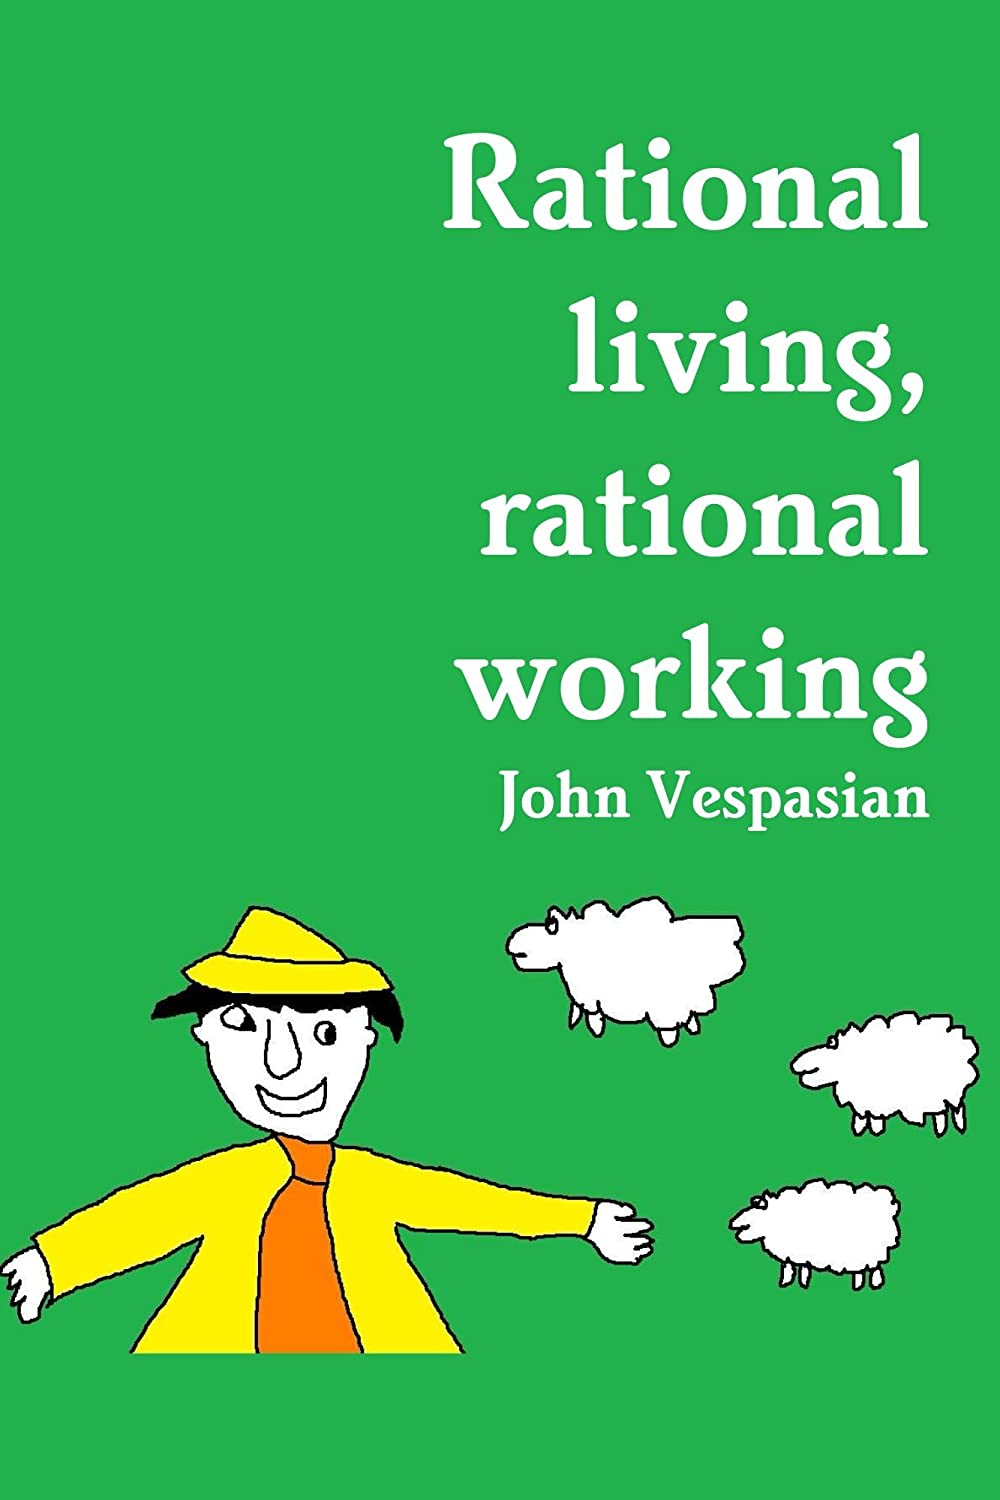 Rational living, rational working